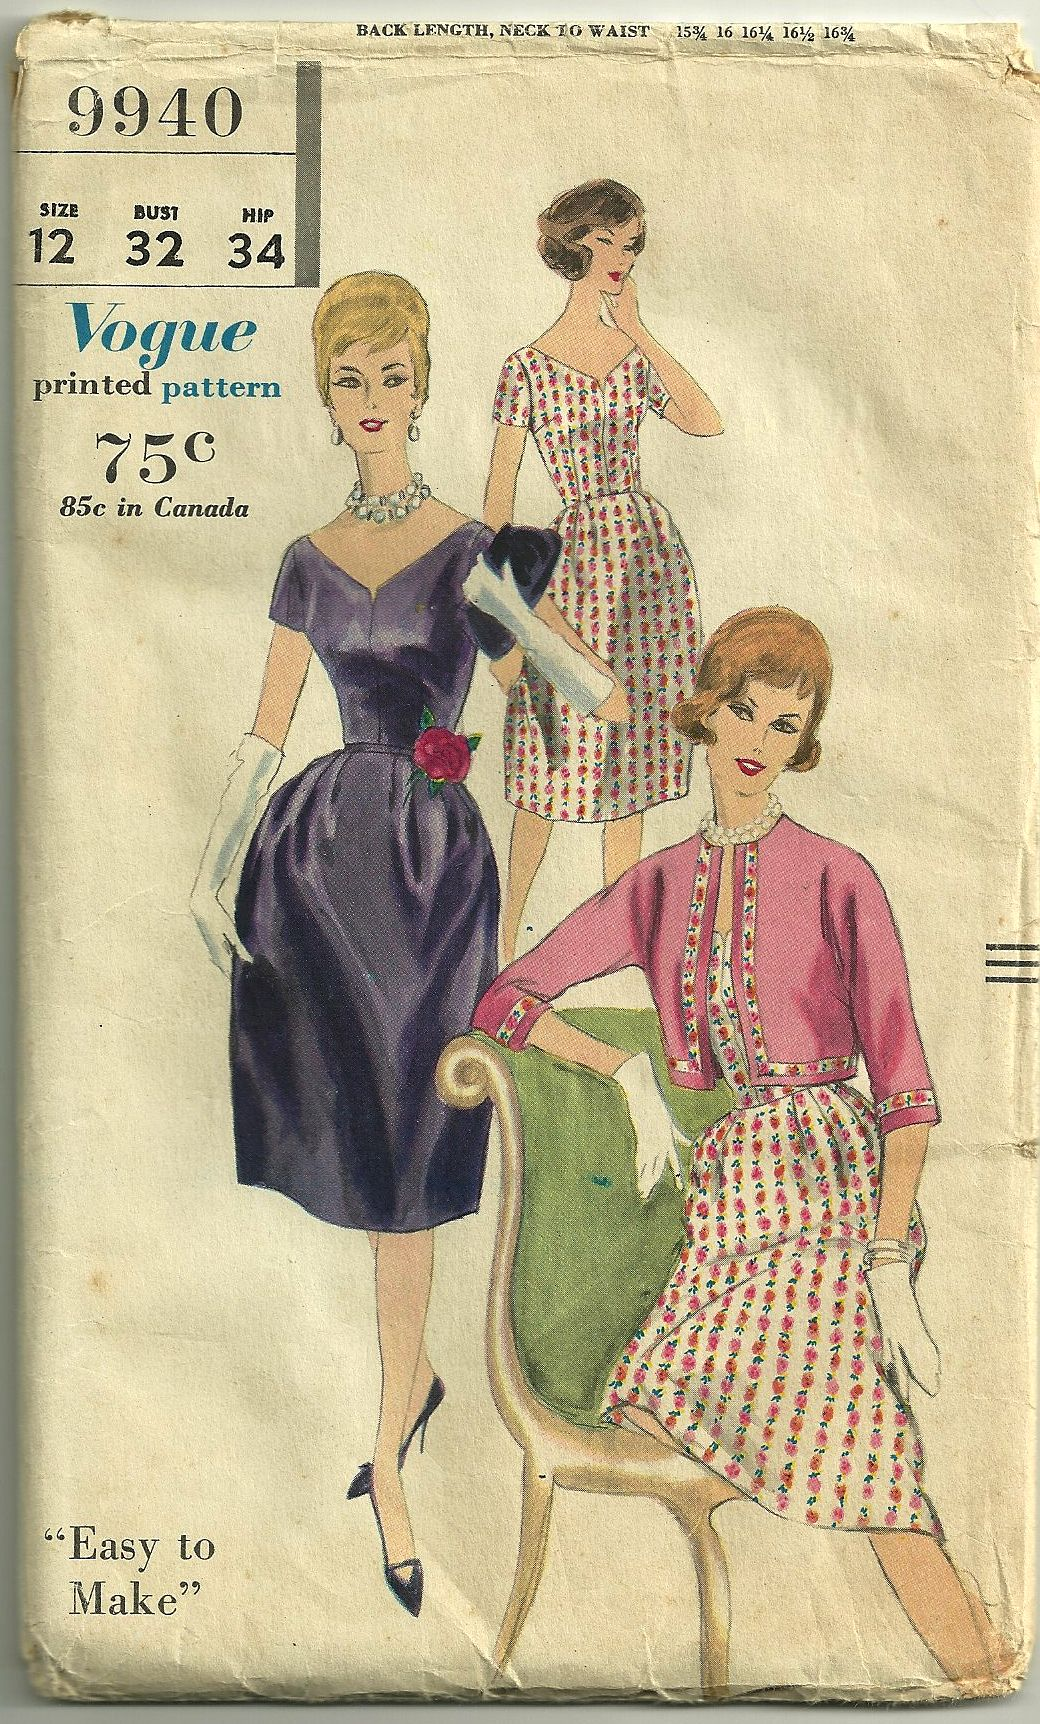 An early 1960s Vogue pattern.